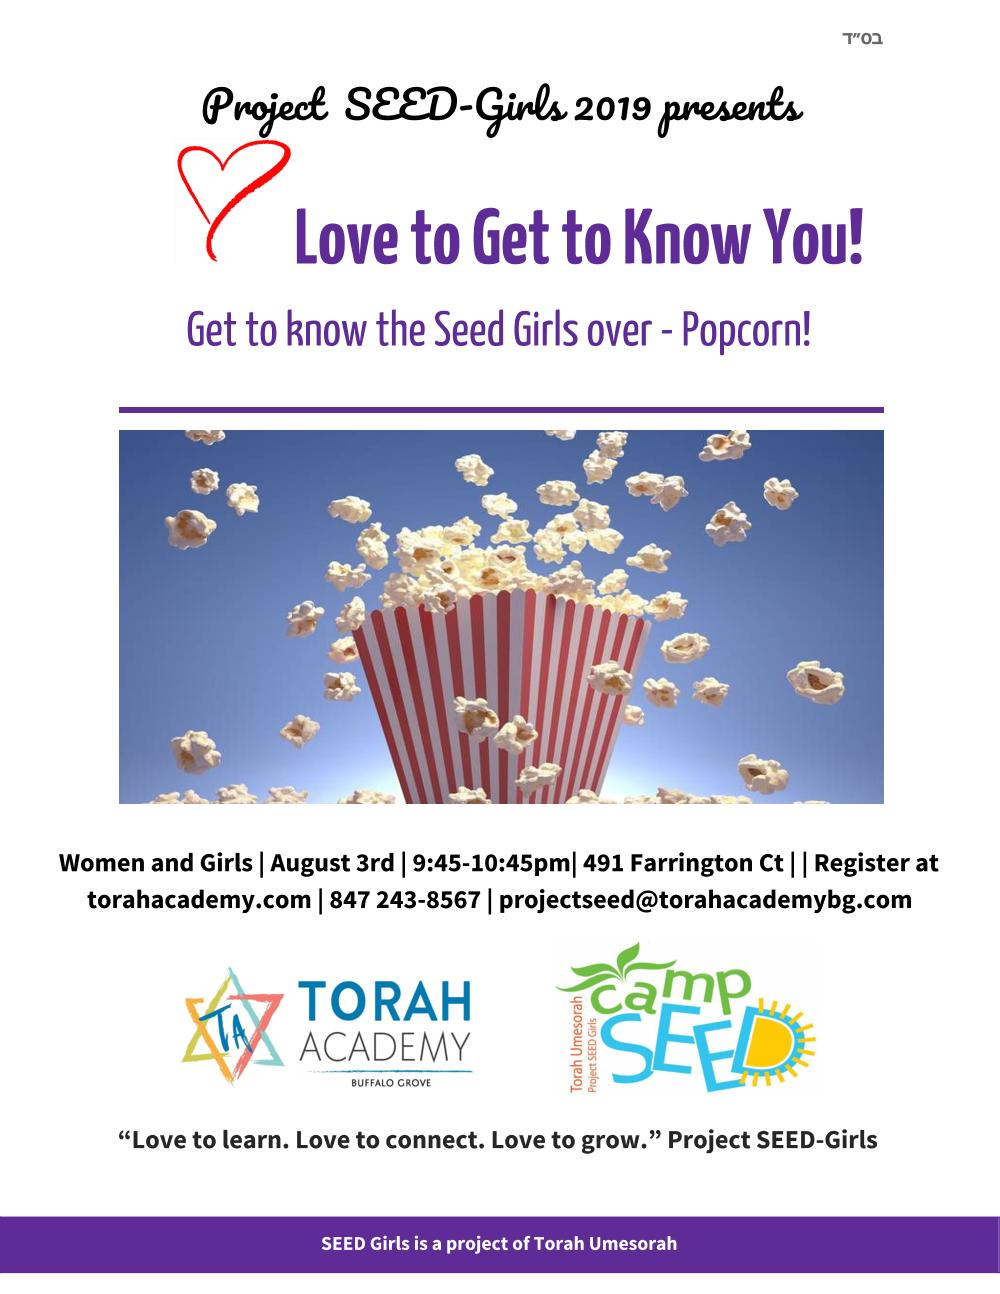 Saturday Night Alive! Come get to know the SEED girls and enjoy a fun activity and yummy flavored popcorn. $5